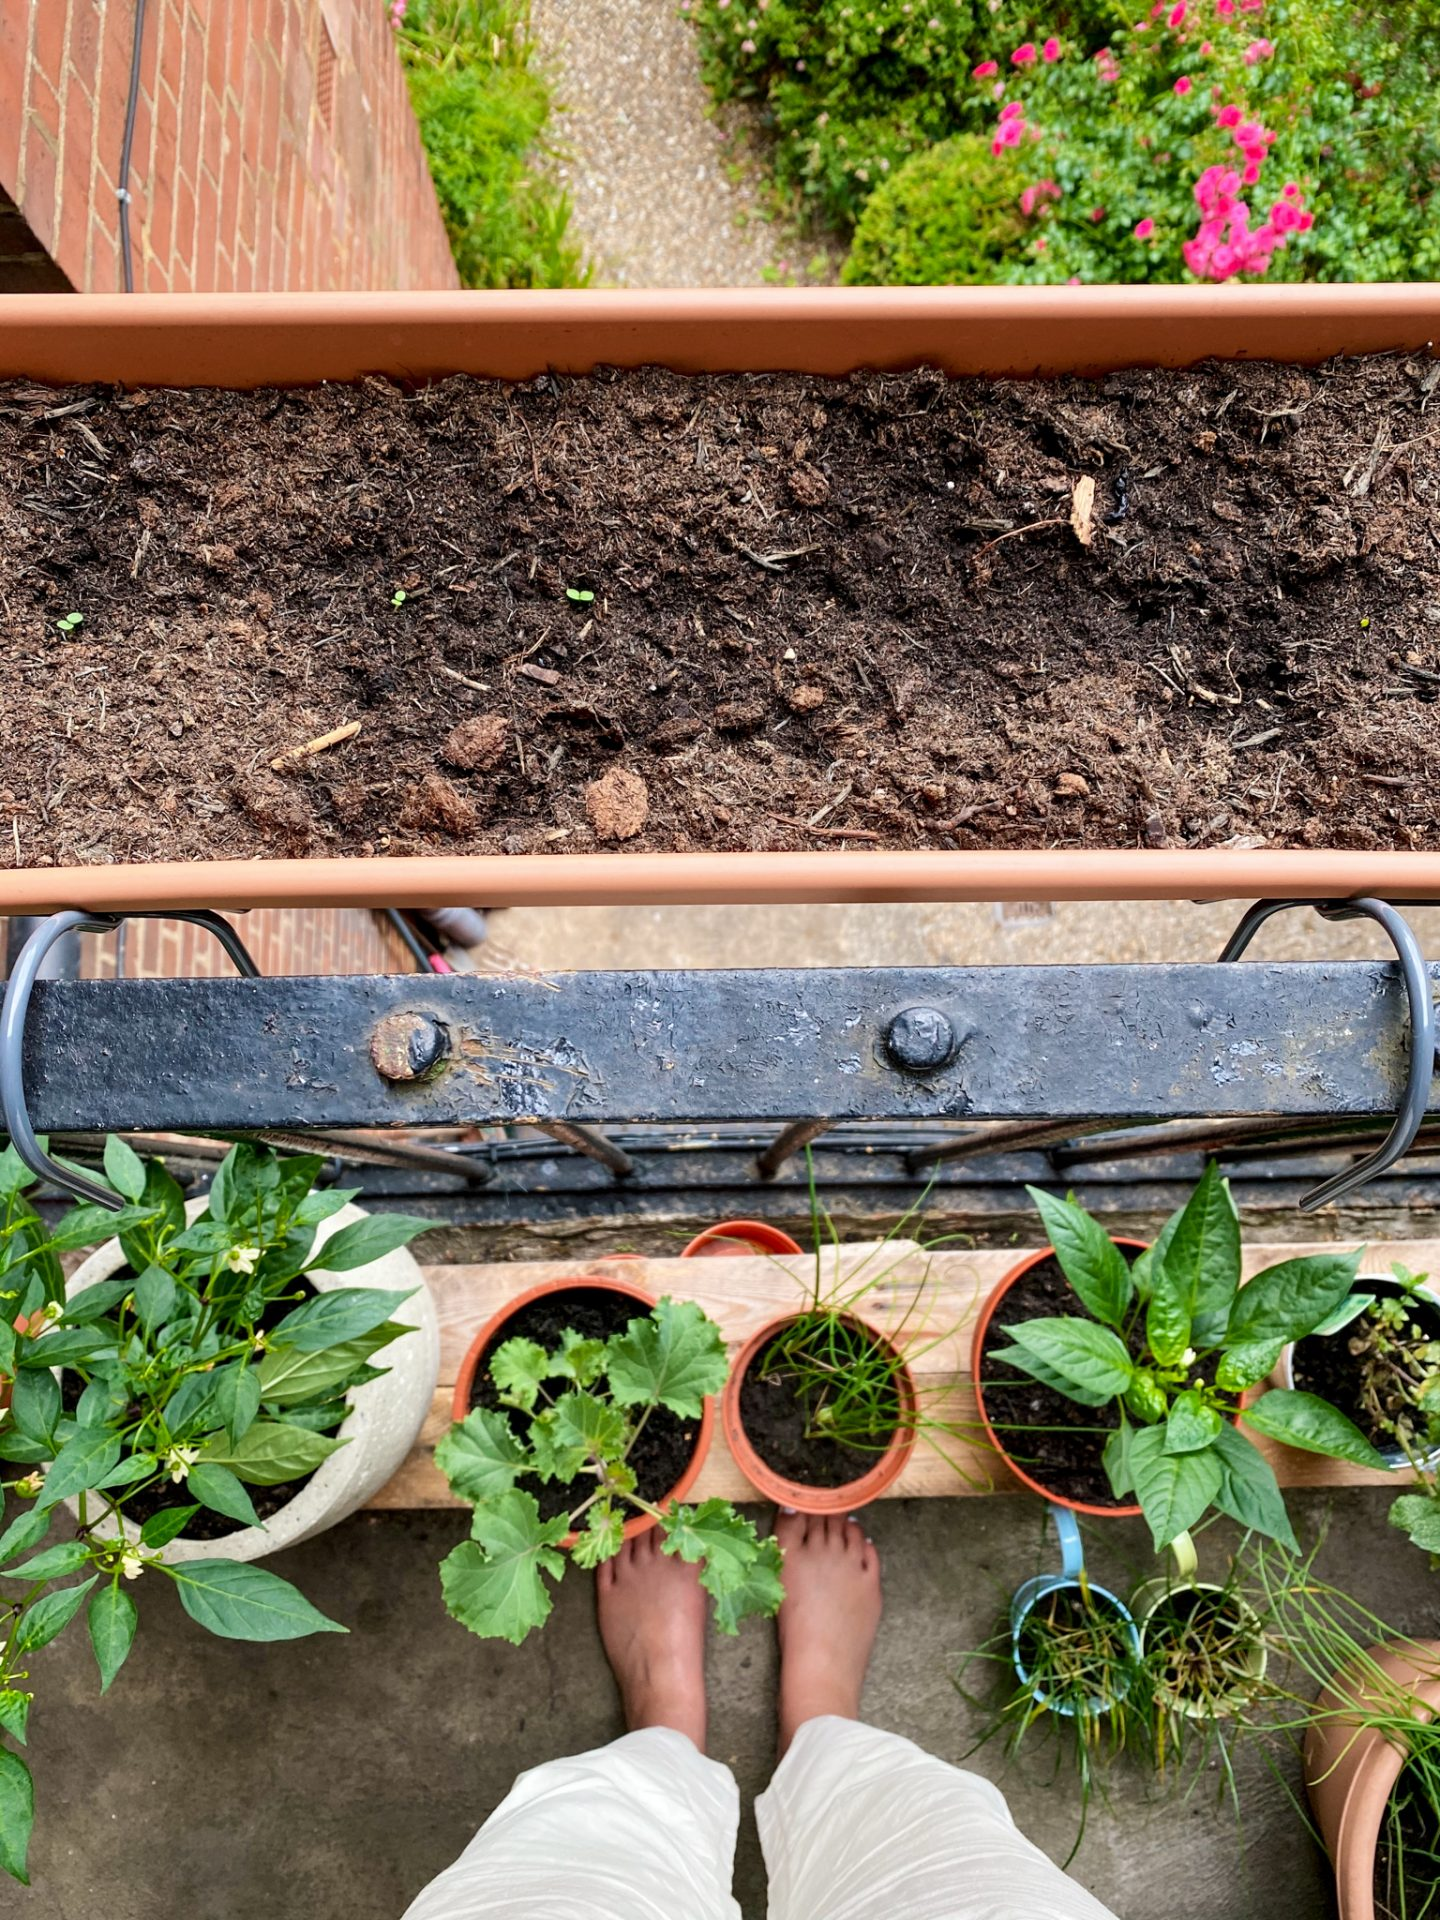 looking down at a window box with small seedlings starting to show, underneath are a number of green plants and charlie's feet are visible